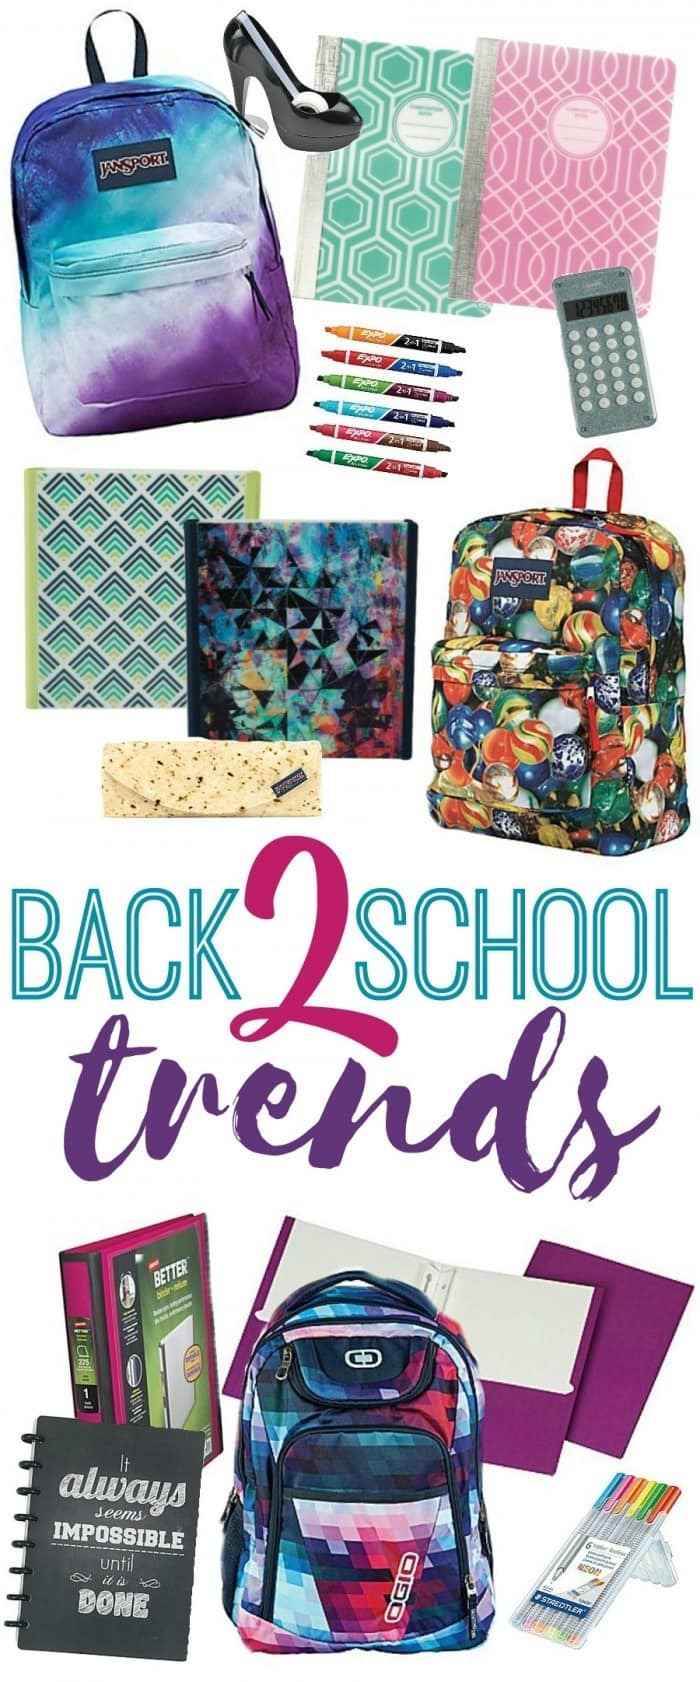 Back to School Trends and Styles